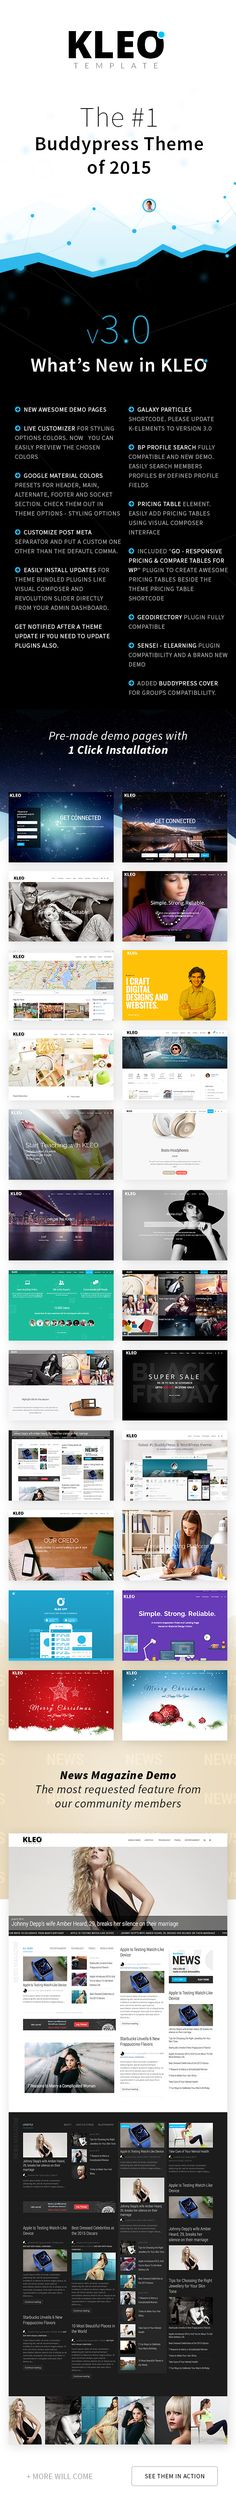 http://themeforest.net/item/kleo-next-level-wordpress-theme/6776630